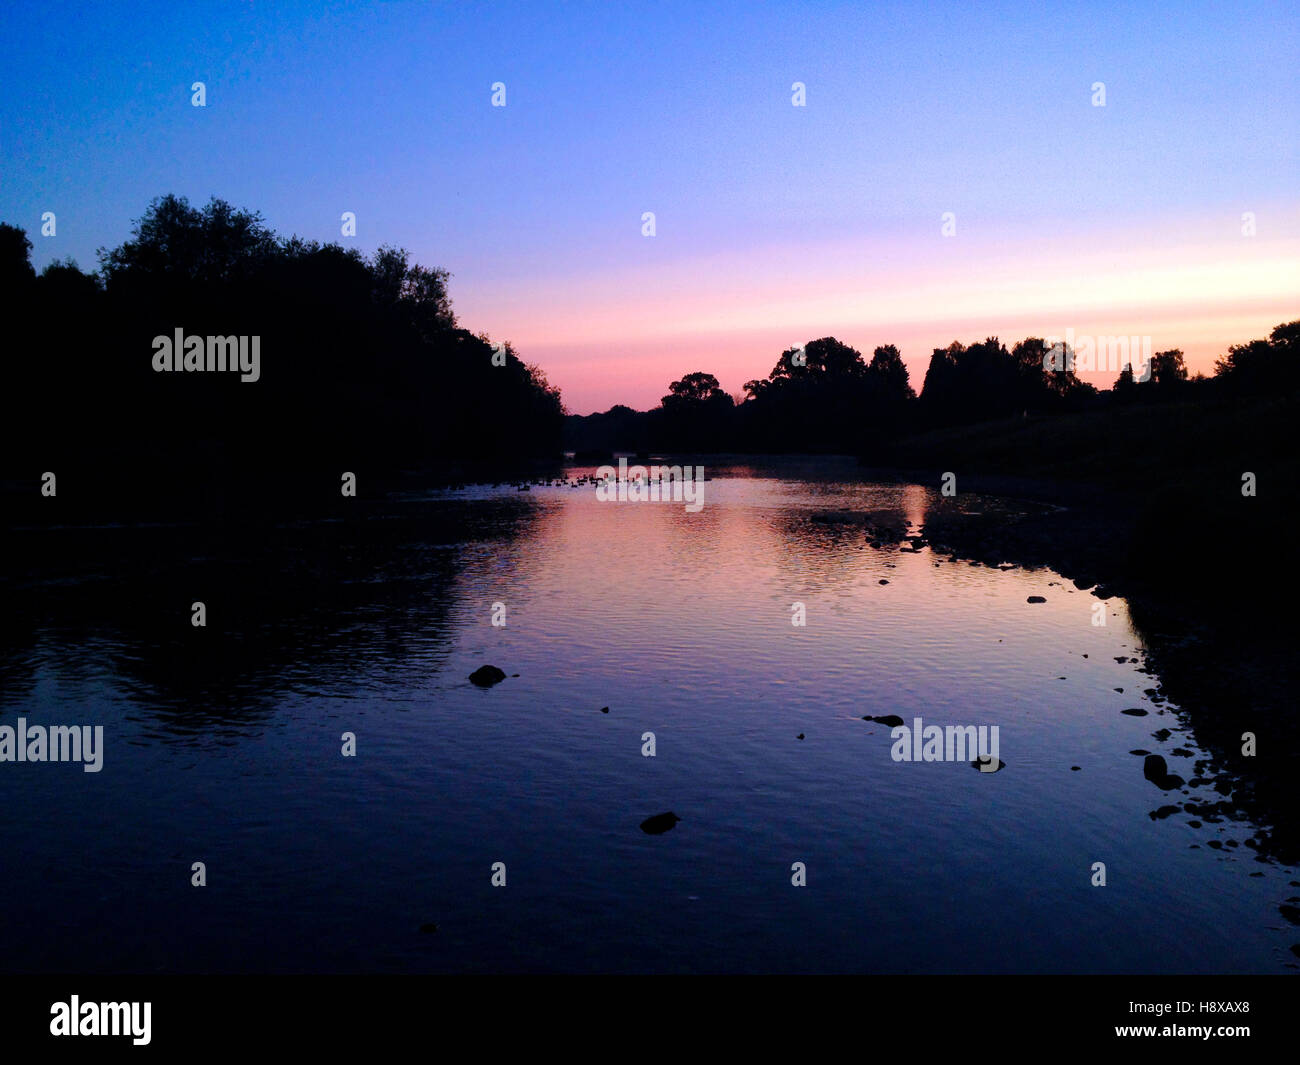 Sunrise over River Wye at Hay on Wye Powys Wales UK - Stock Image